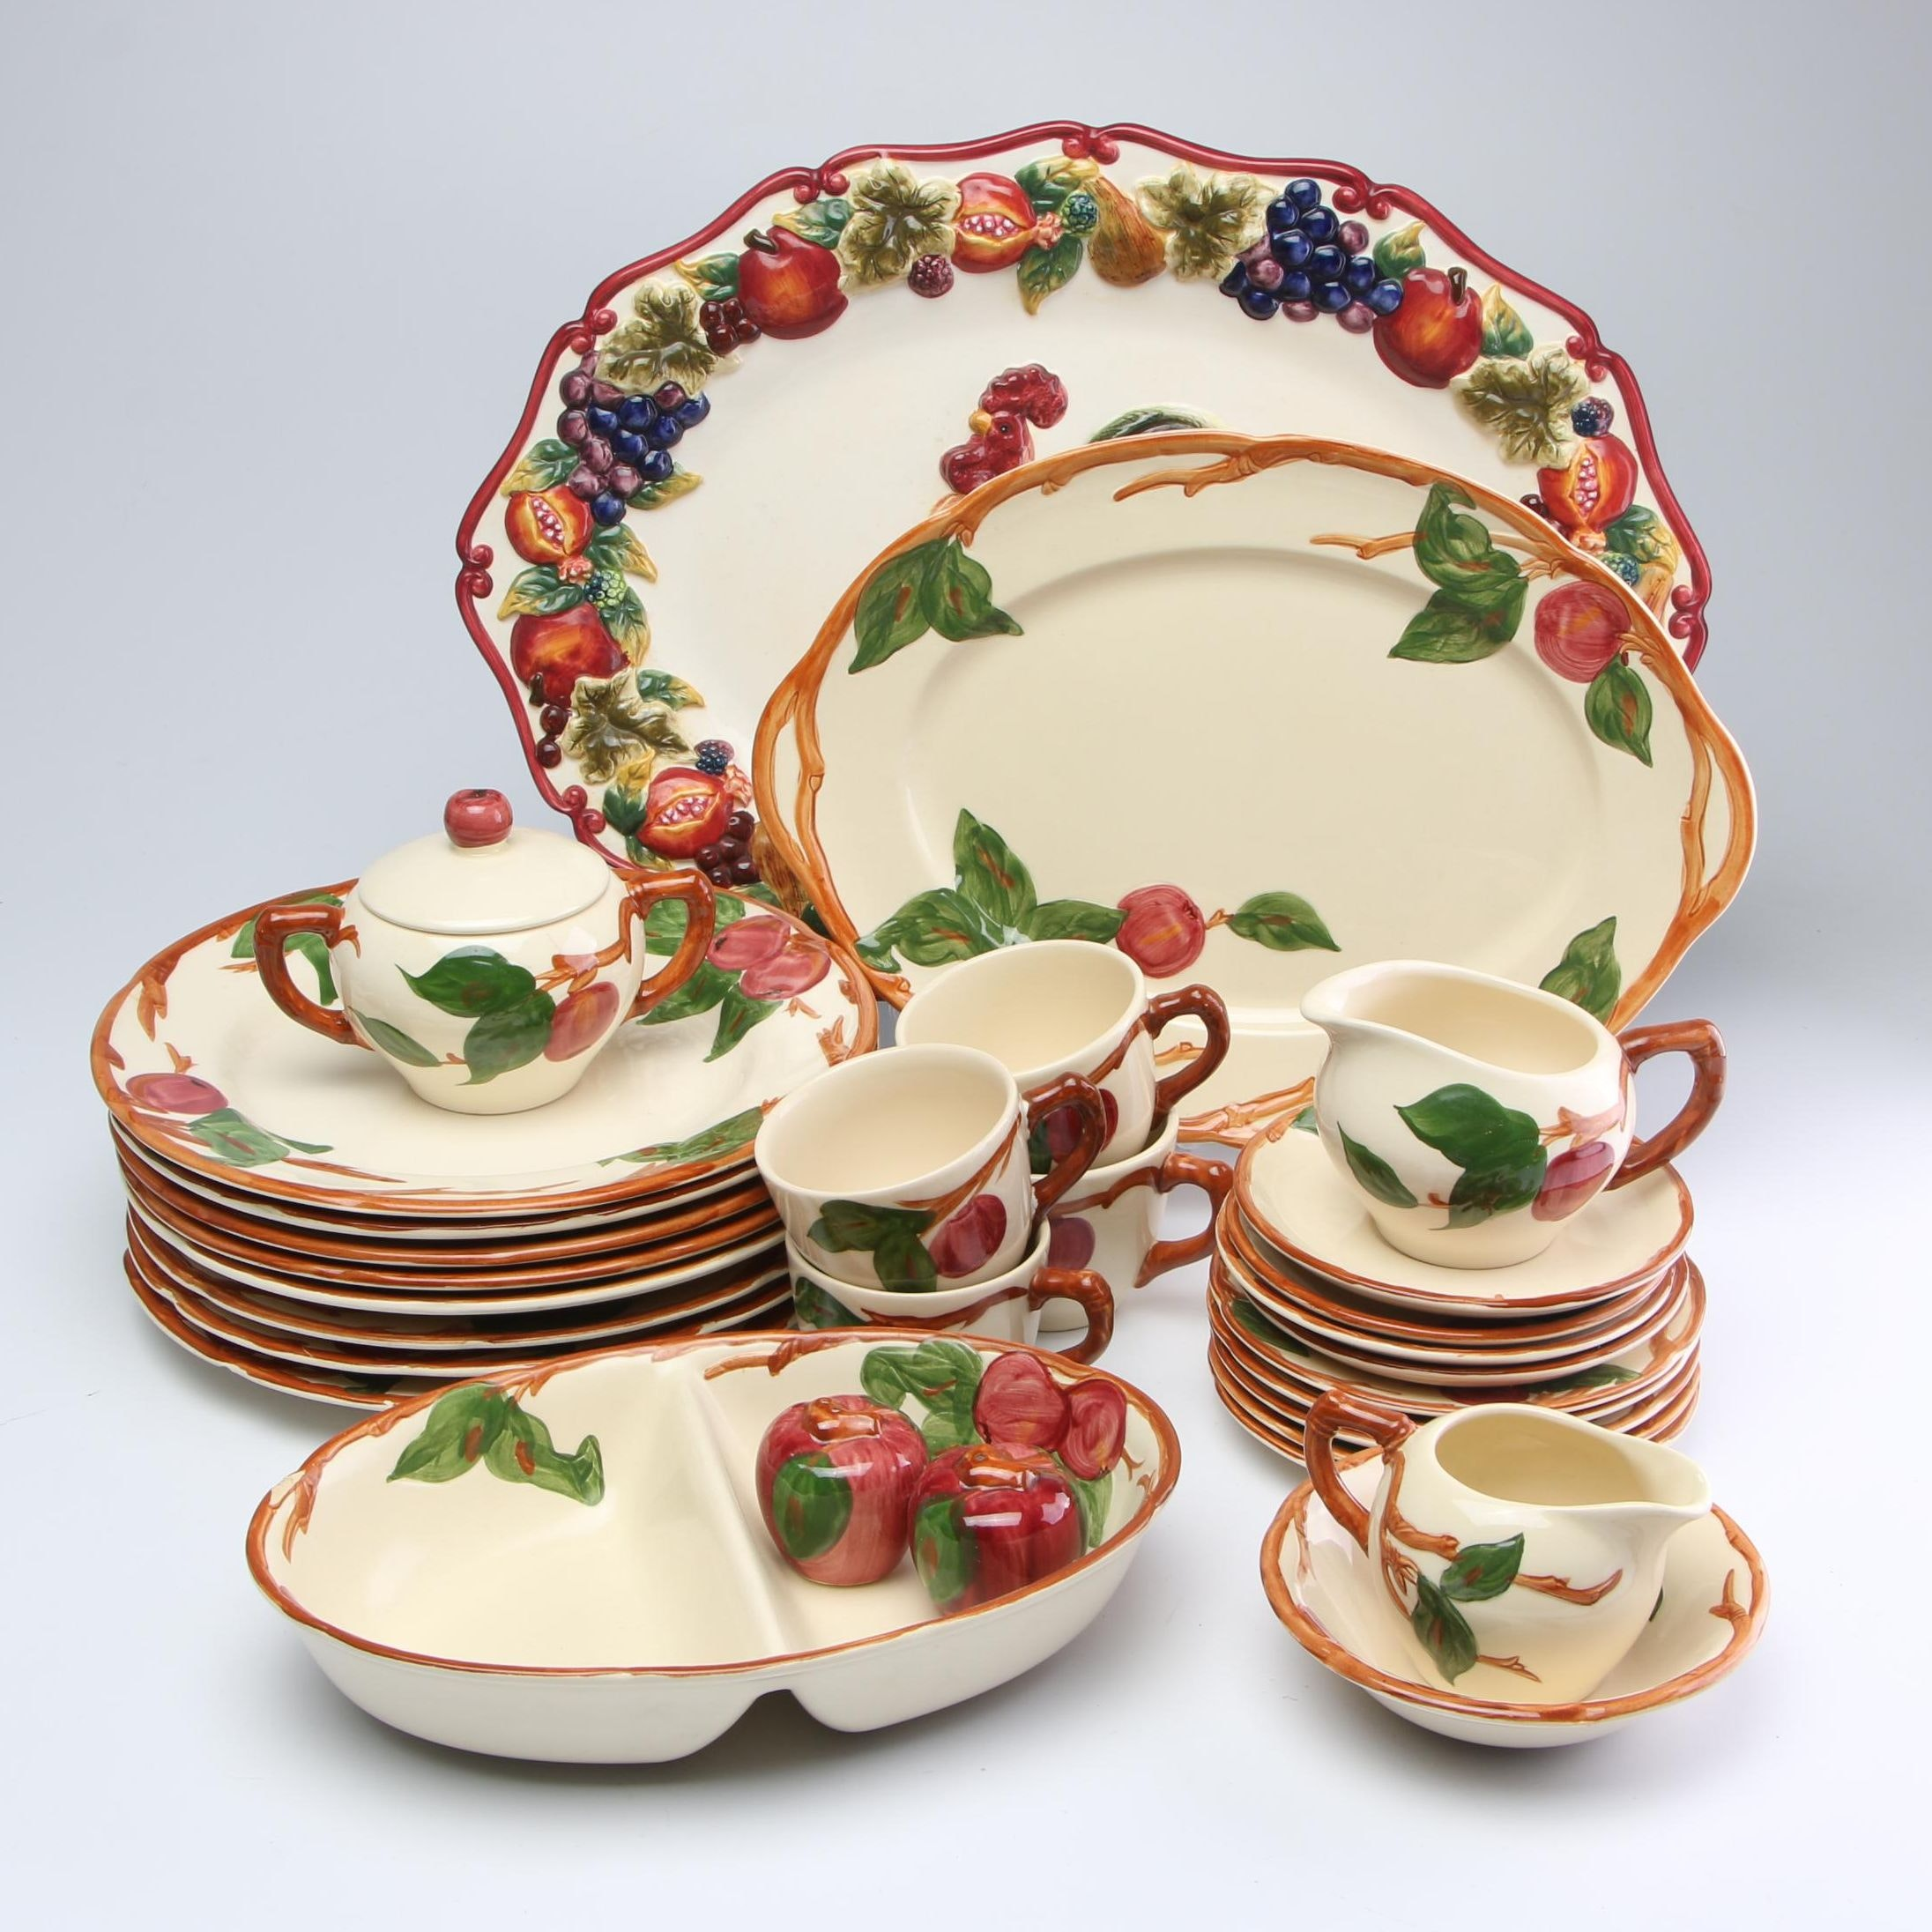 Franciscan Earthenware and Other Service and Dinnerware, Late 20th Century